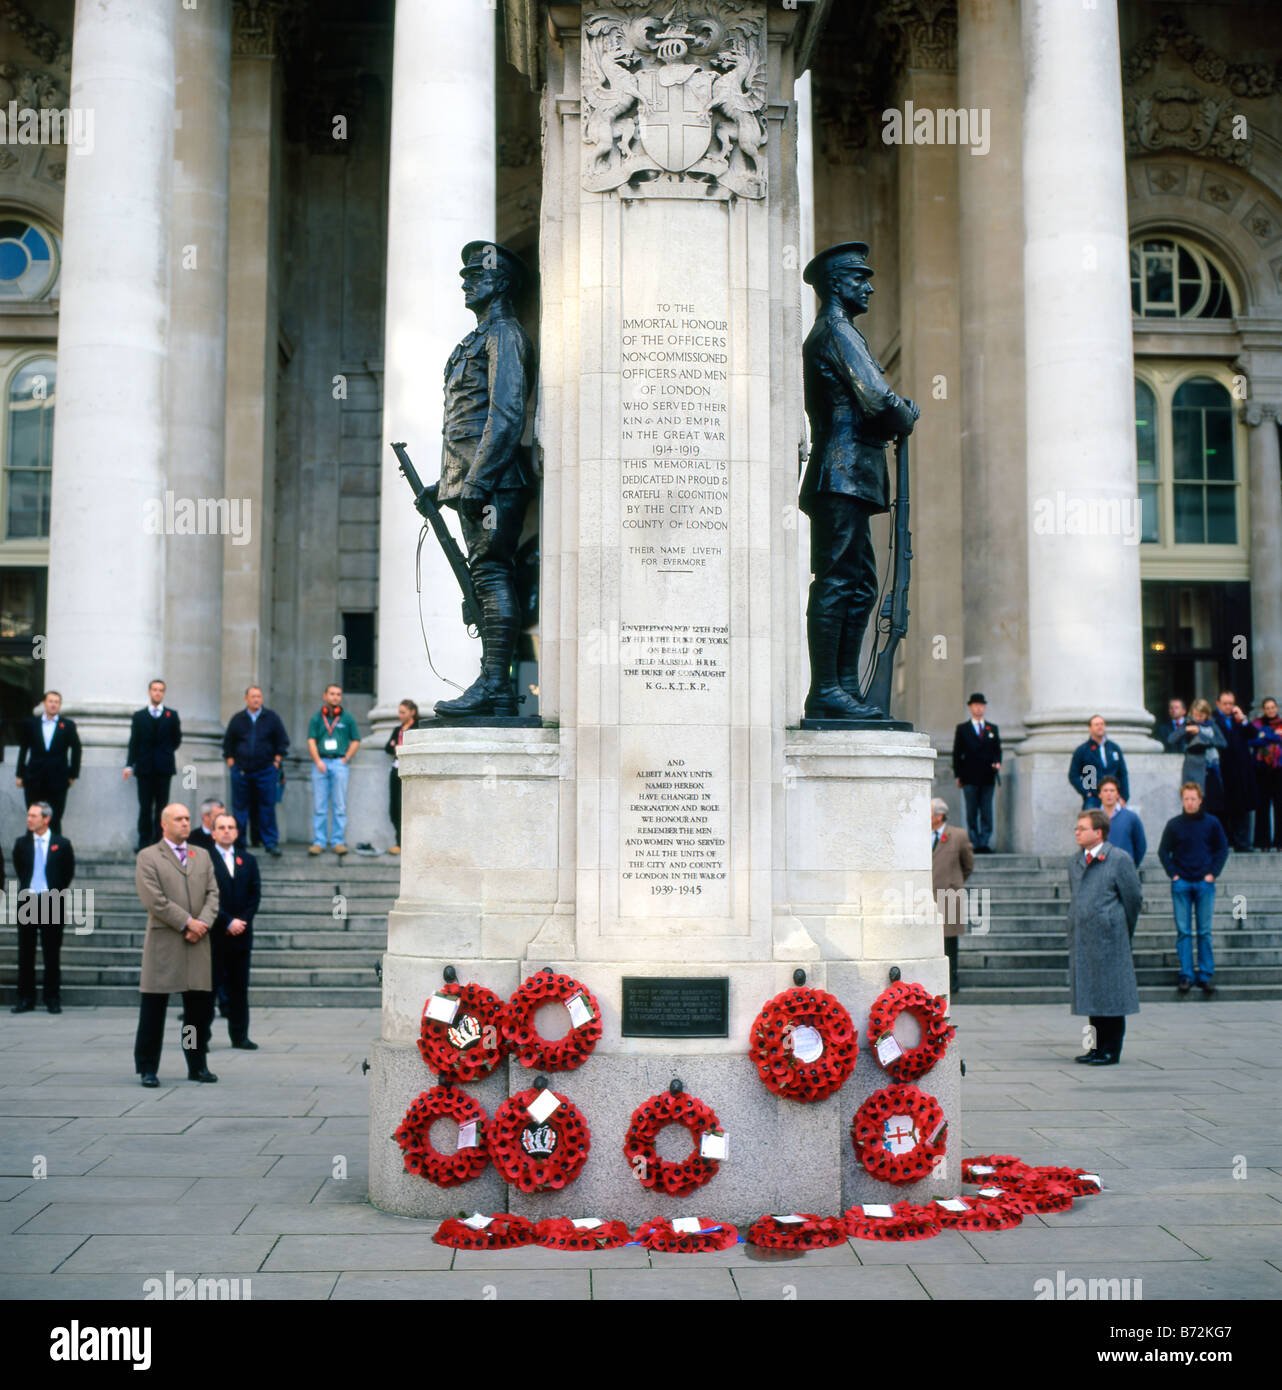 People stand in silence on Remembrance Day Armistice Day outside the Royal Exchange War Memorial London England - Stock Image